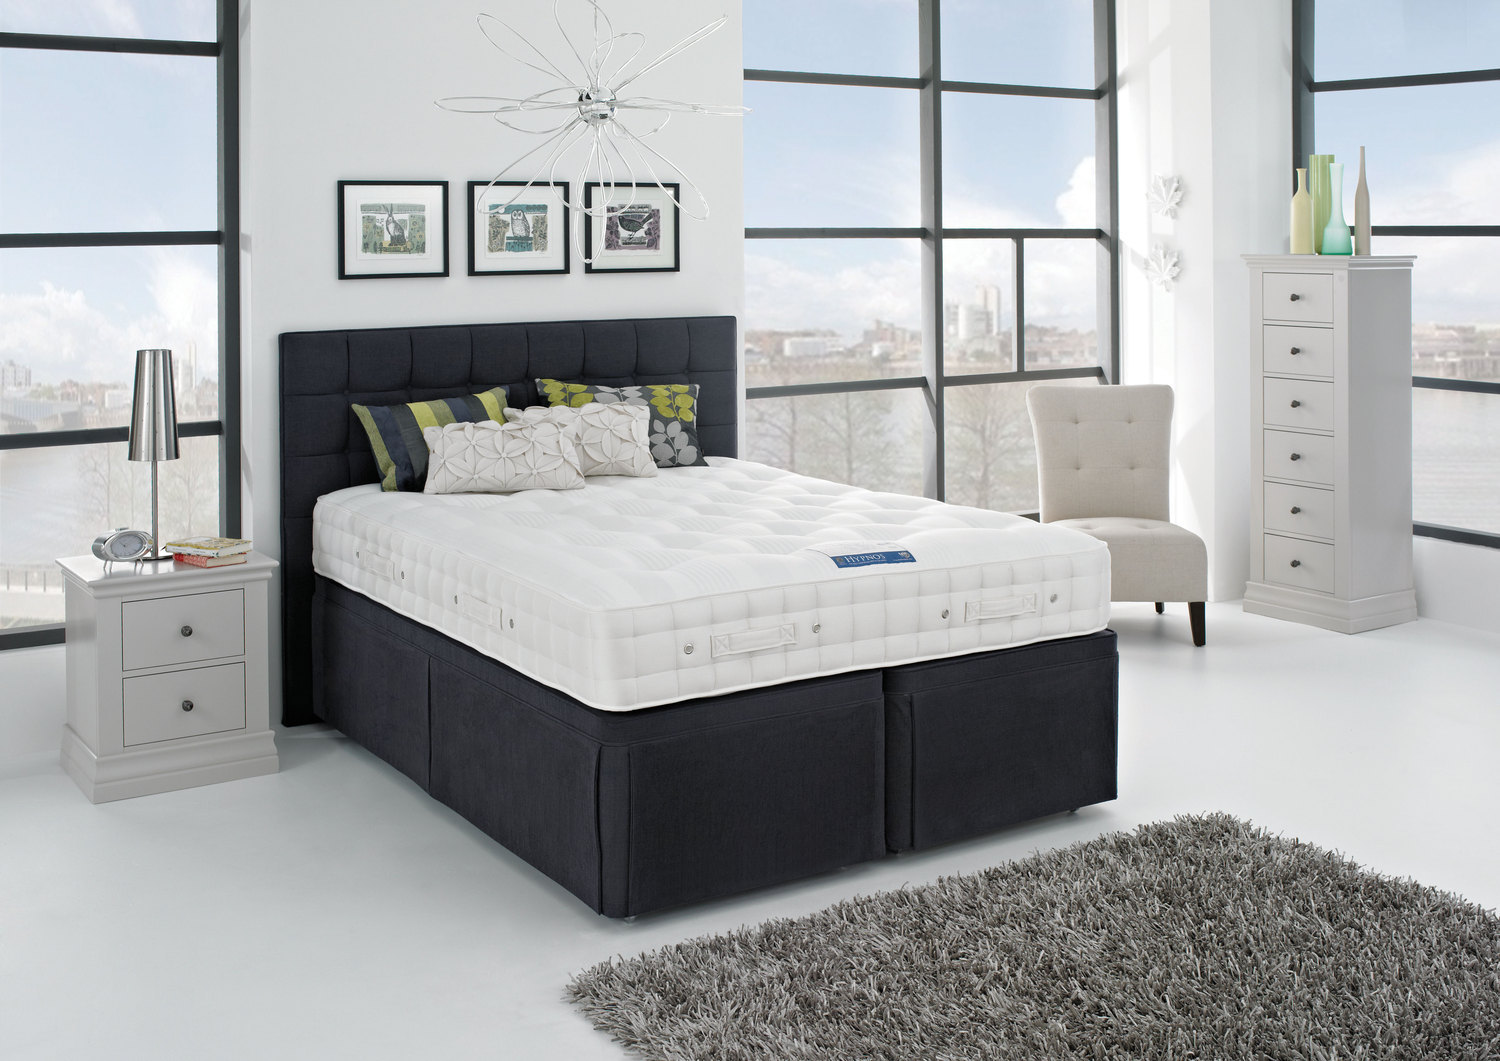 Hypnos orthocare 10 mattress firm from for King size divan bed without mattress